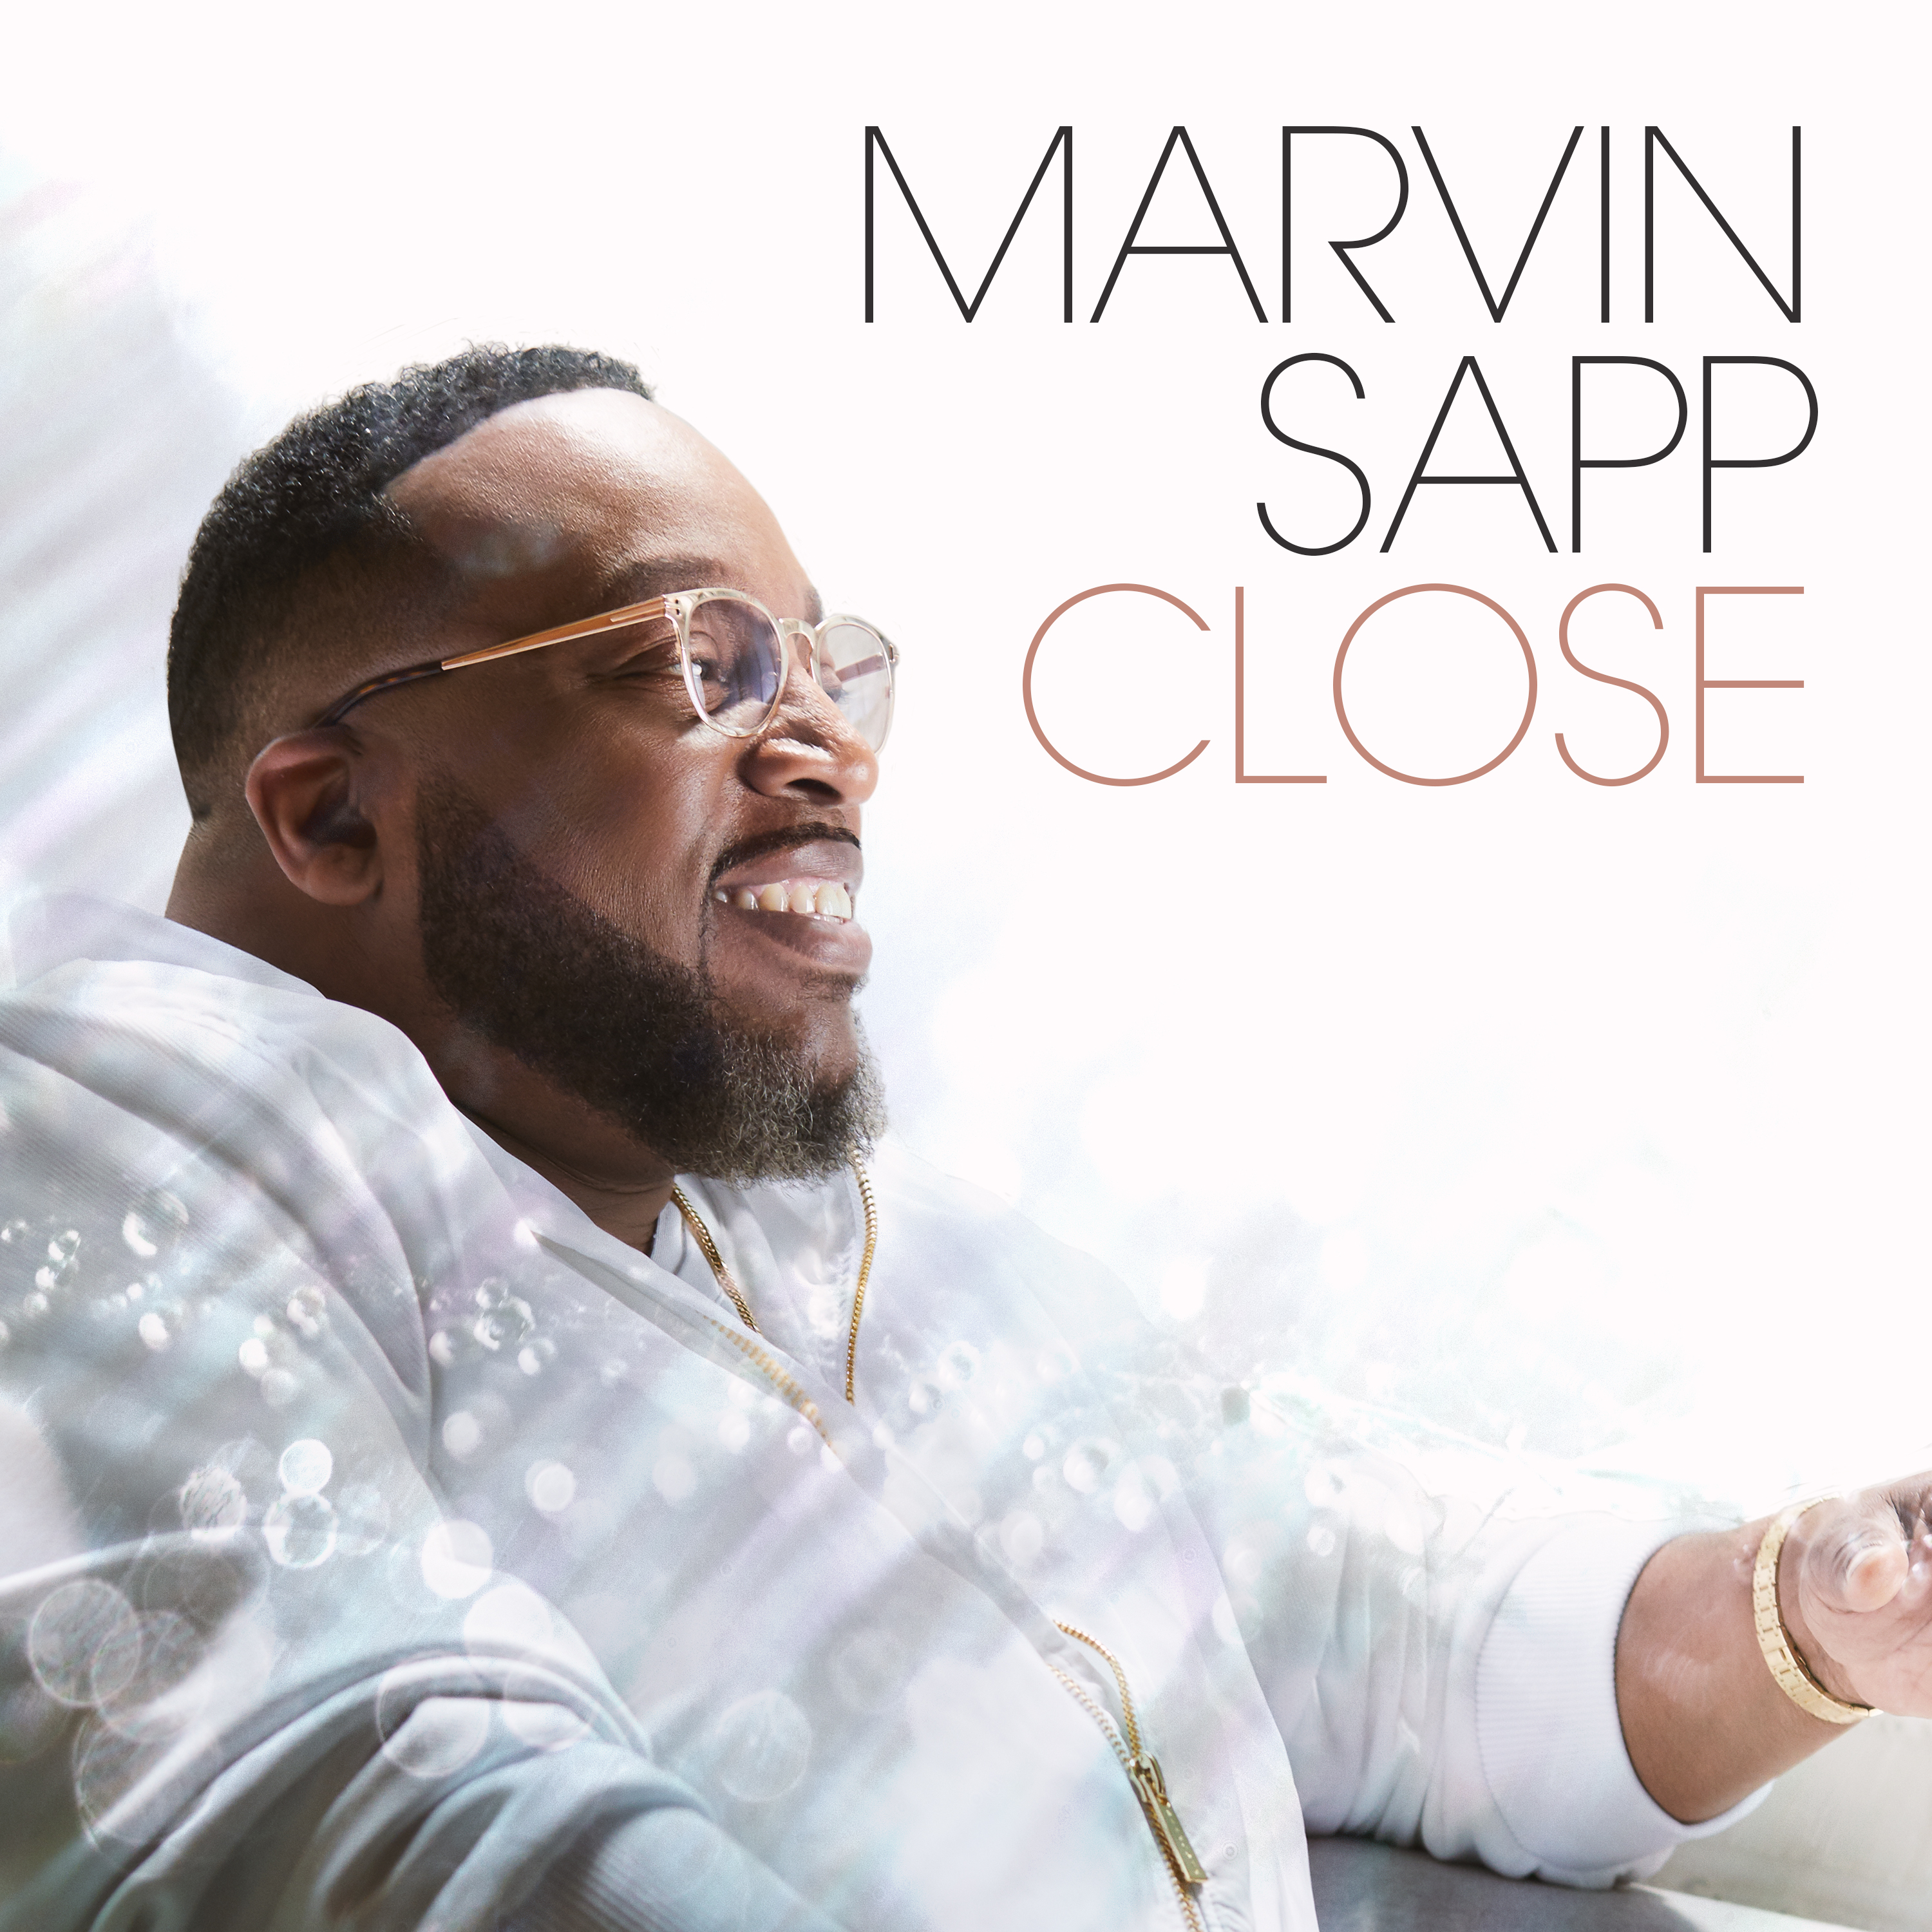 MarvinSapp Close album cvr-hi